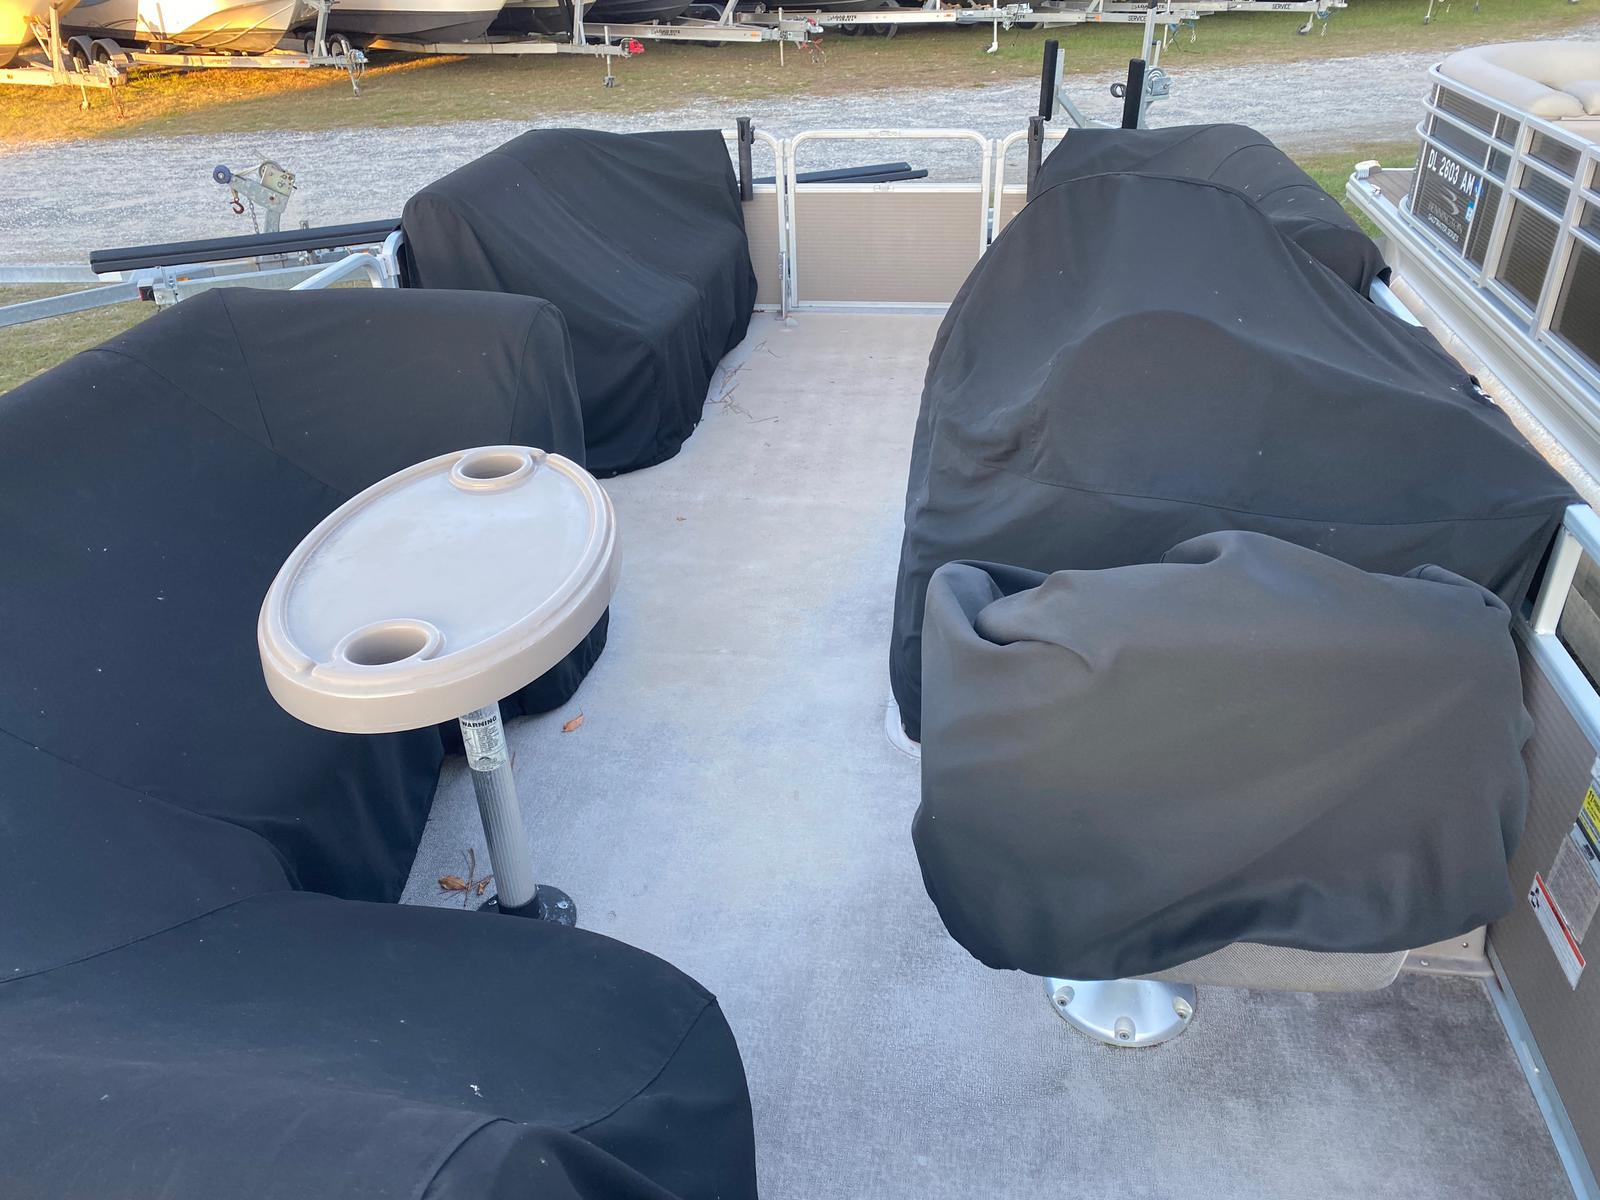 2009 Premier Pontoons boat for sale, model of the boat is Sunspree 200 Pontoon & Image # 12 of 13